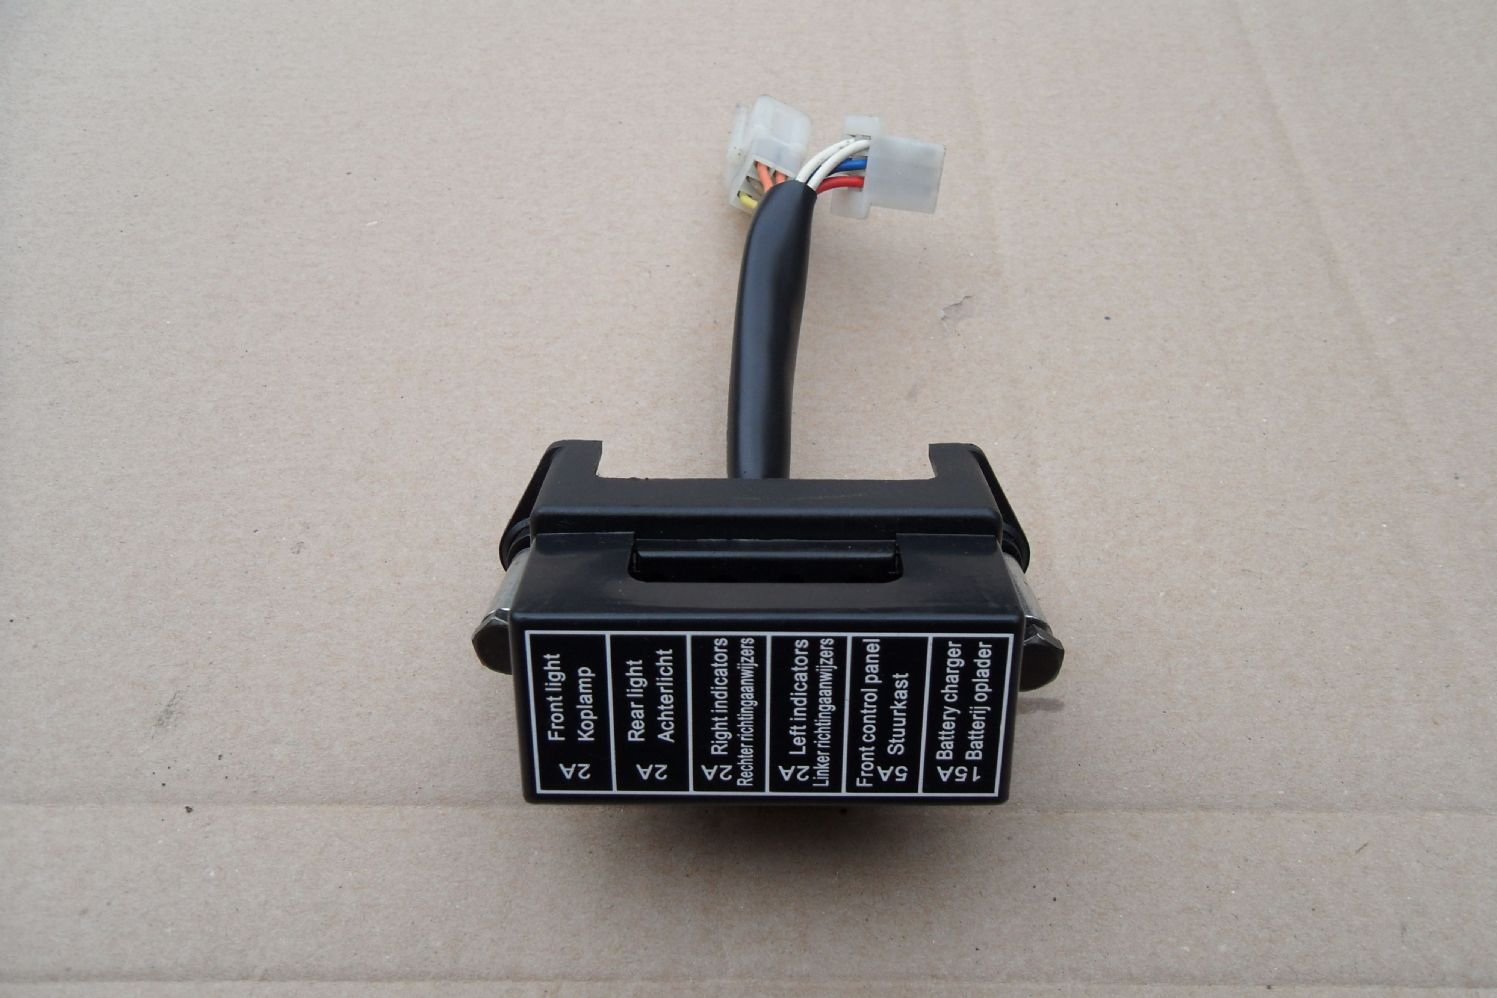 A Fuse Box for a Sunrise / Sterling Onyx Mobility Scooter PMO15